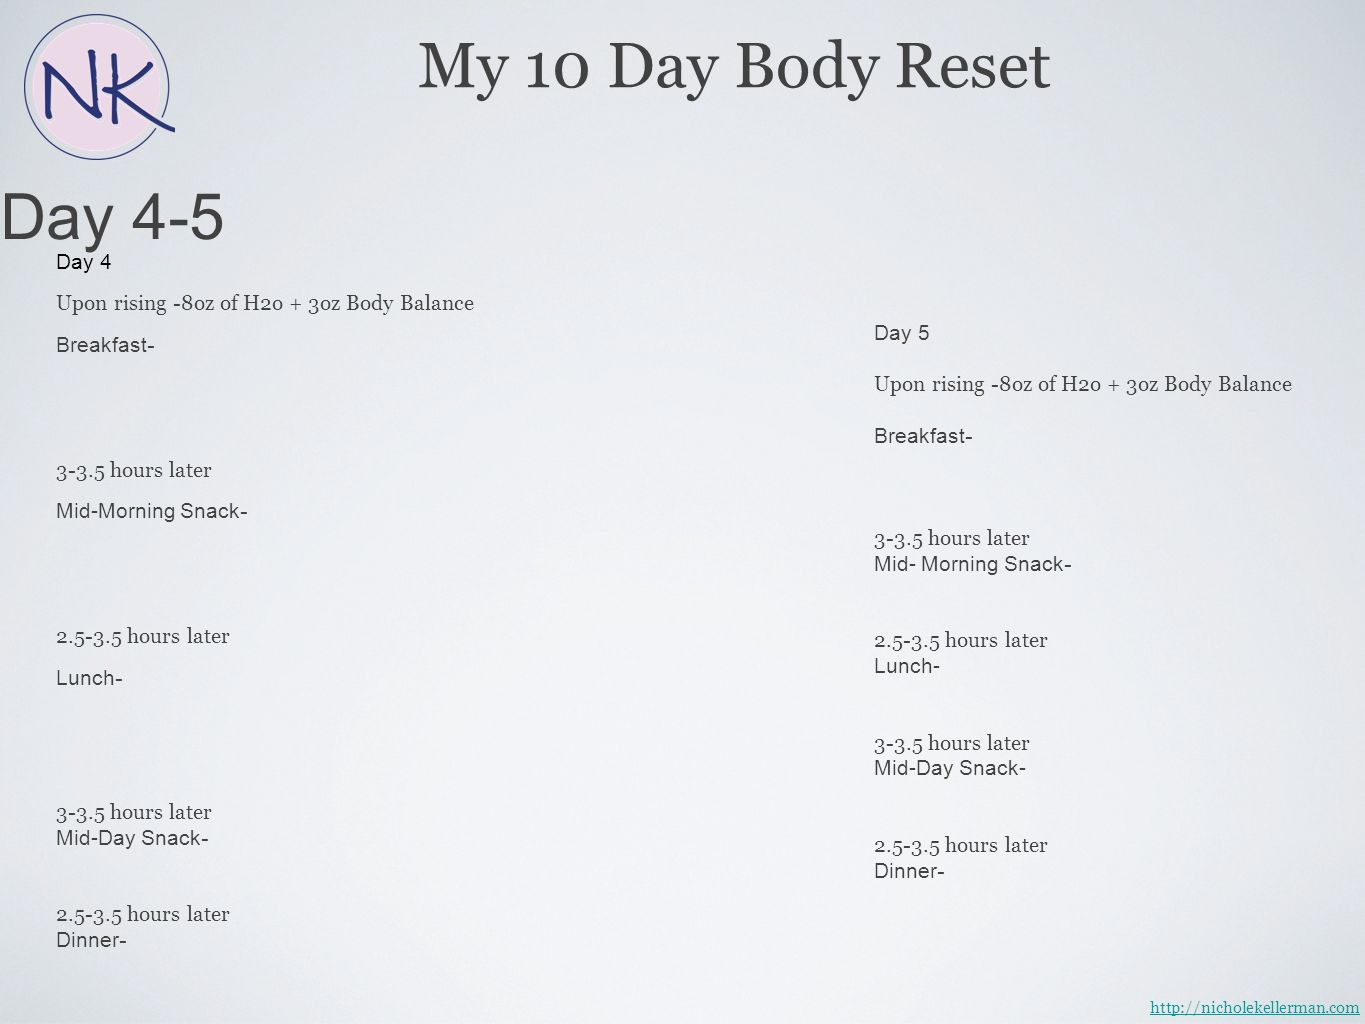 Day 4-5 My 10 Day Body Reset Day 4 Upon rising -8oz of H2o + 3oz Body Balance Breakfast - 3-3.5 hours later Mid-Morning Snack - 2.5-3.5 hours later Lunch - 3-3.5 hours later Mid-Day Snack - 2.5-3.5 hours later Dinner - Day 5 Upon rising -8oz of H2o + 3oz Body Balance Breakfast - 3-3.5 hours later Mid- Morning Snack - 2.5-3.5 hours later Lunch- 3-3.5 hours later Mid-Day Snack- 2.5-3.5 hours later Dinner - http://nicholekellerman.com